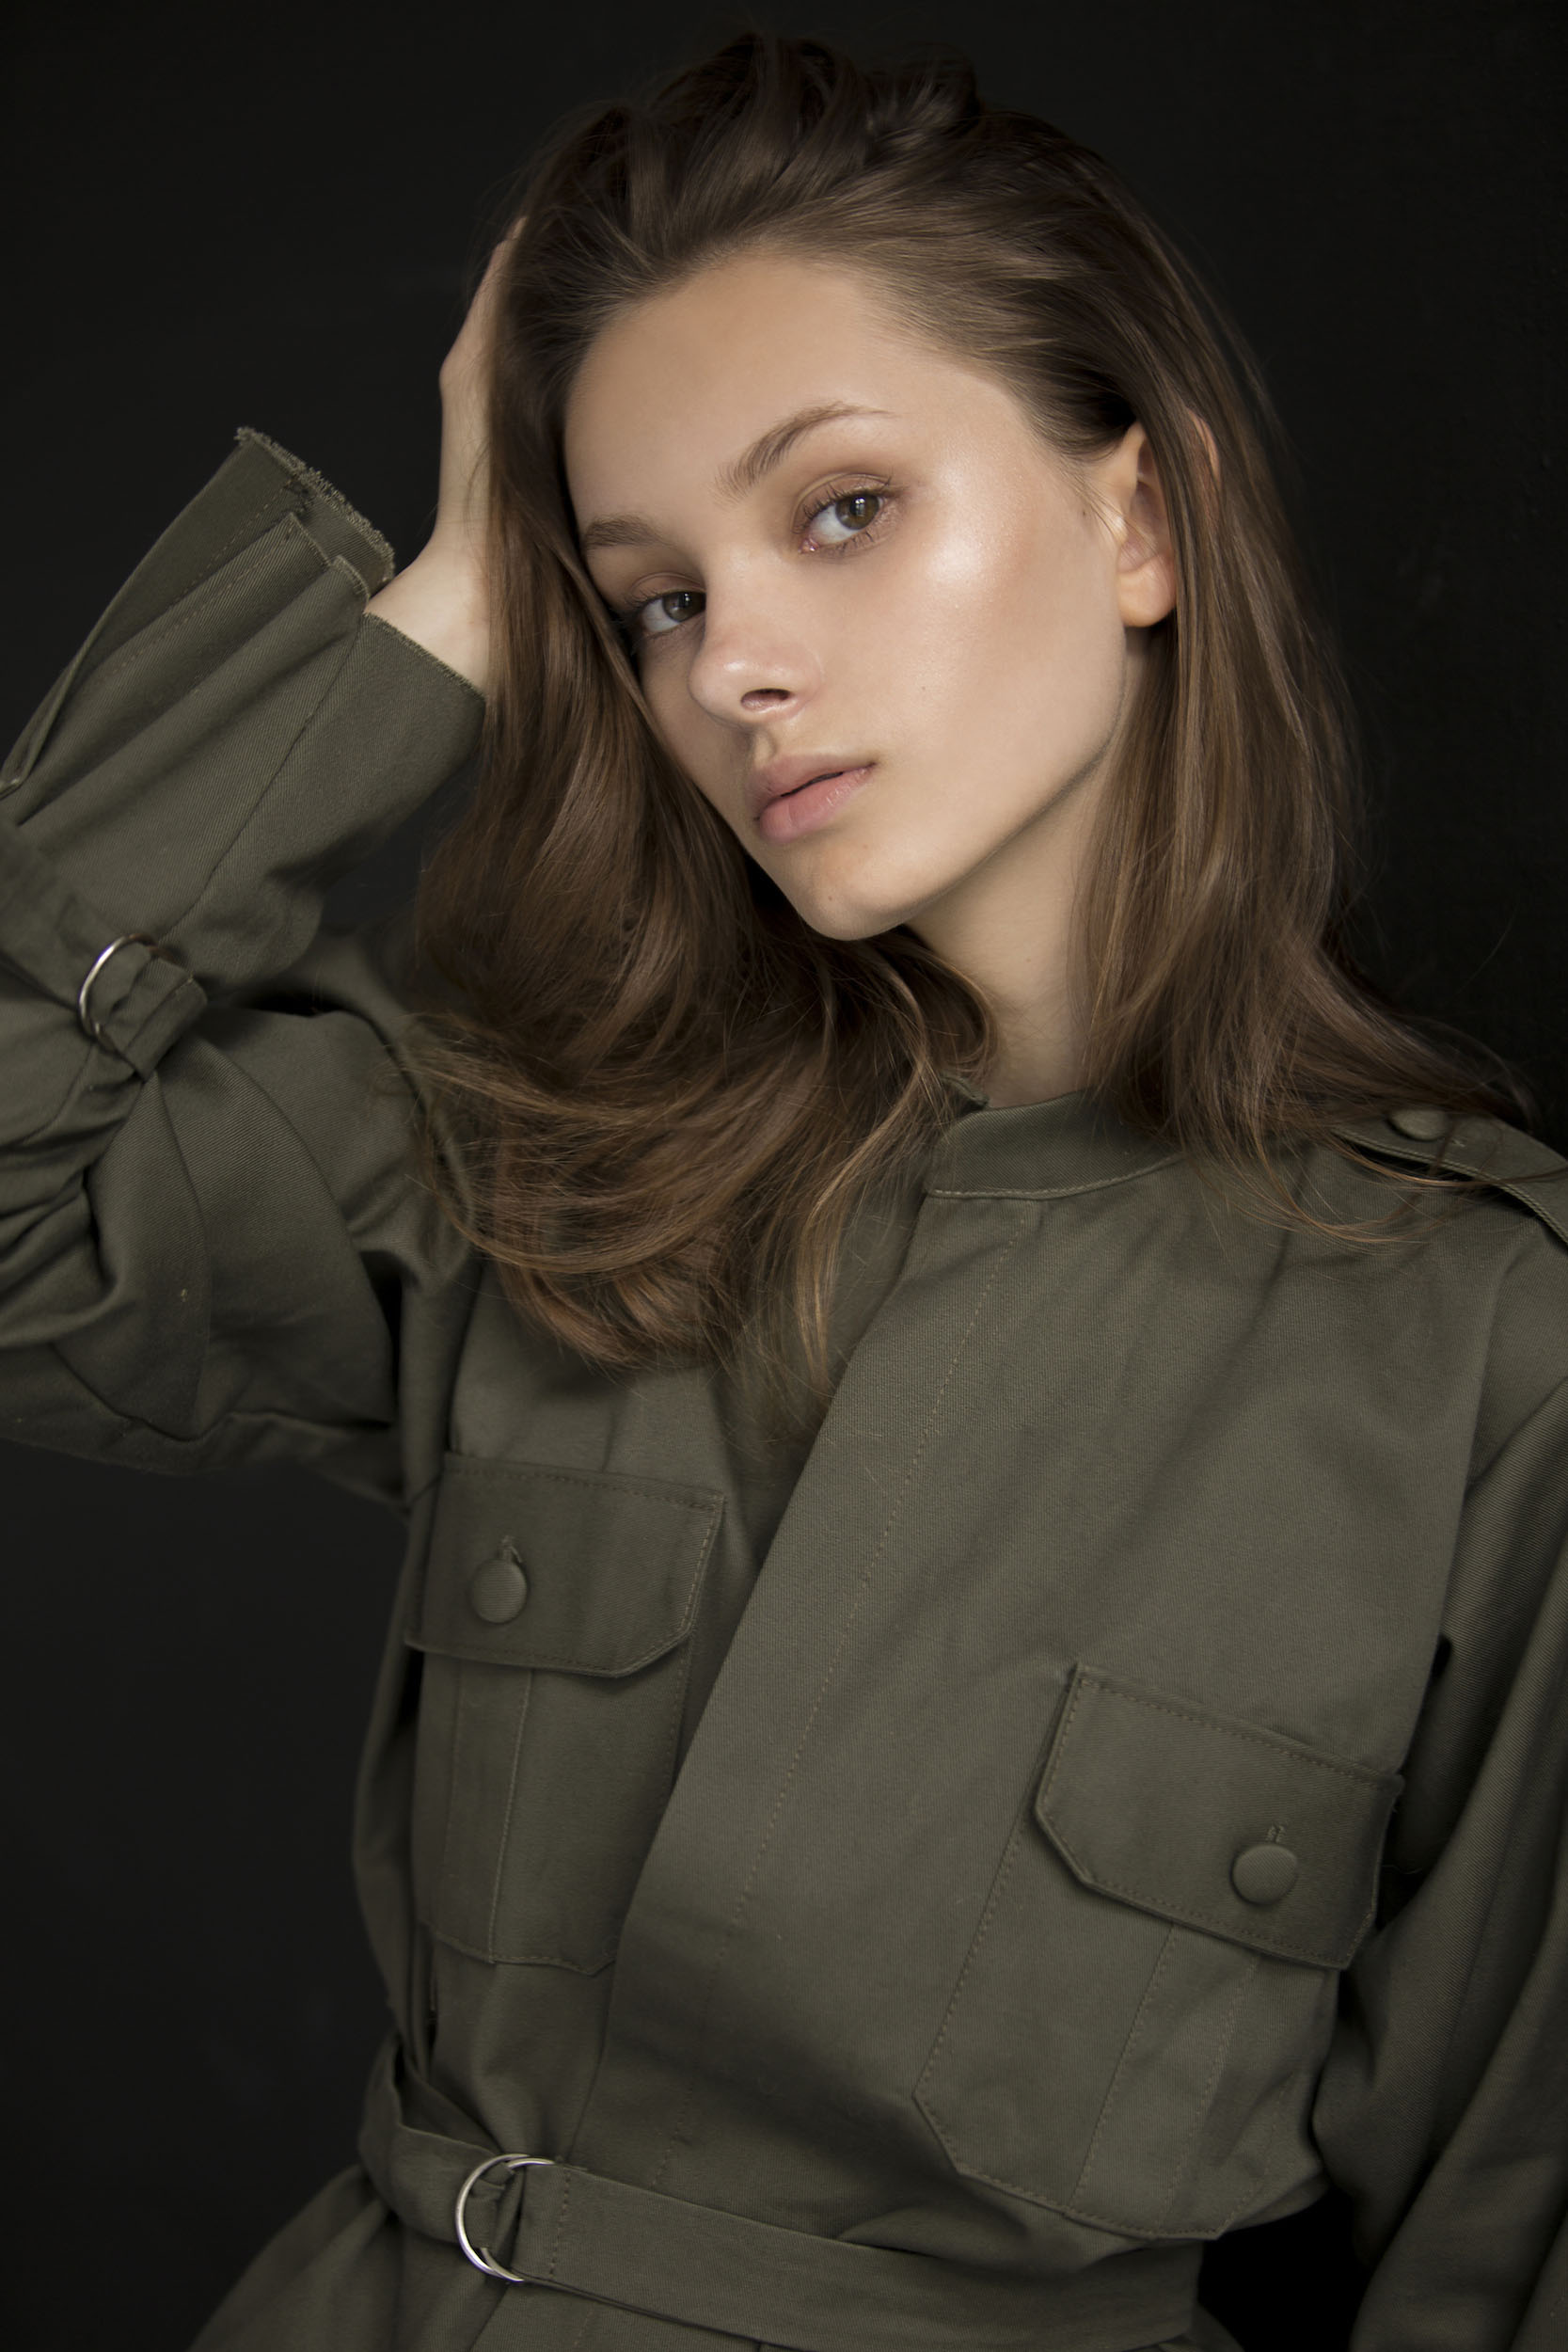 JULIA BILSKA – NEW FACE AGENCJI AVANT MODELS